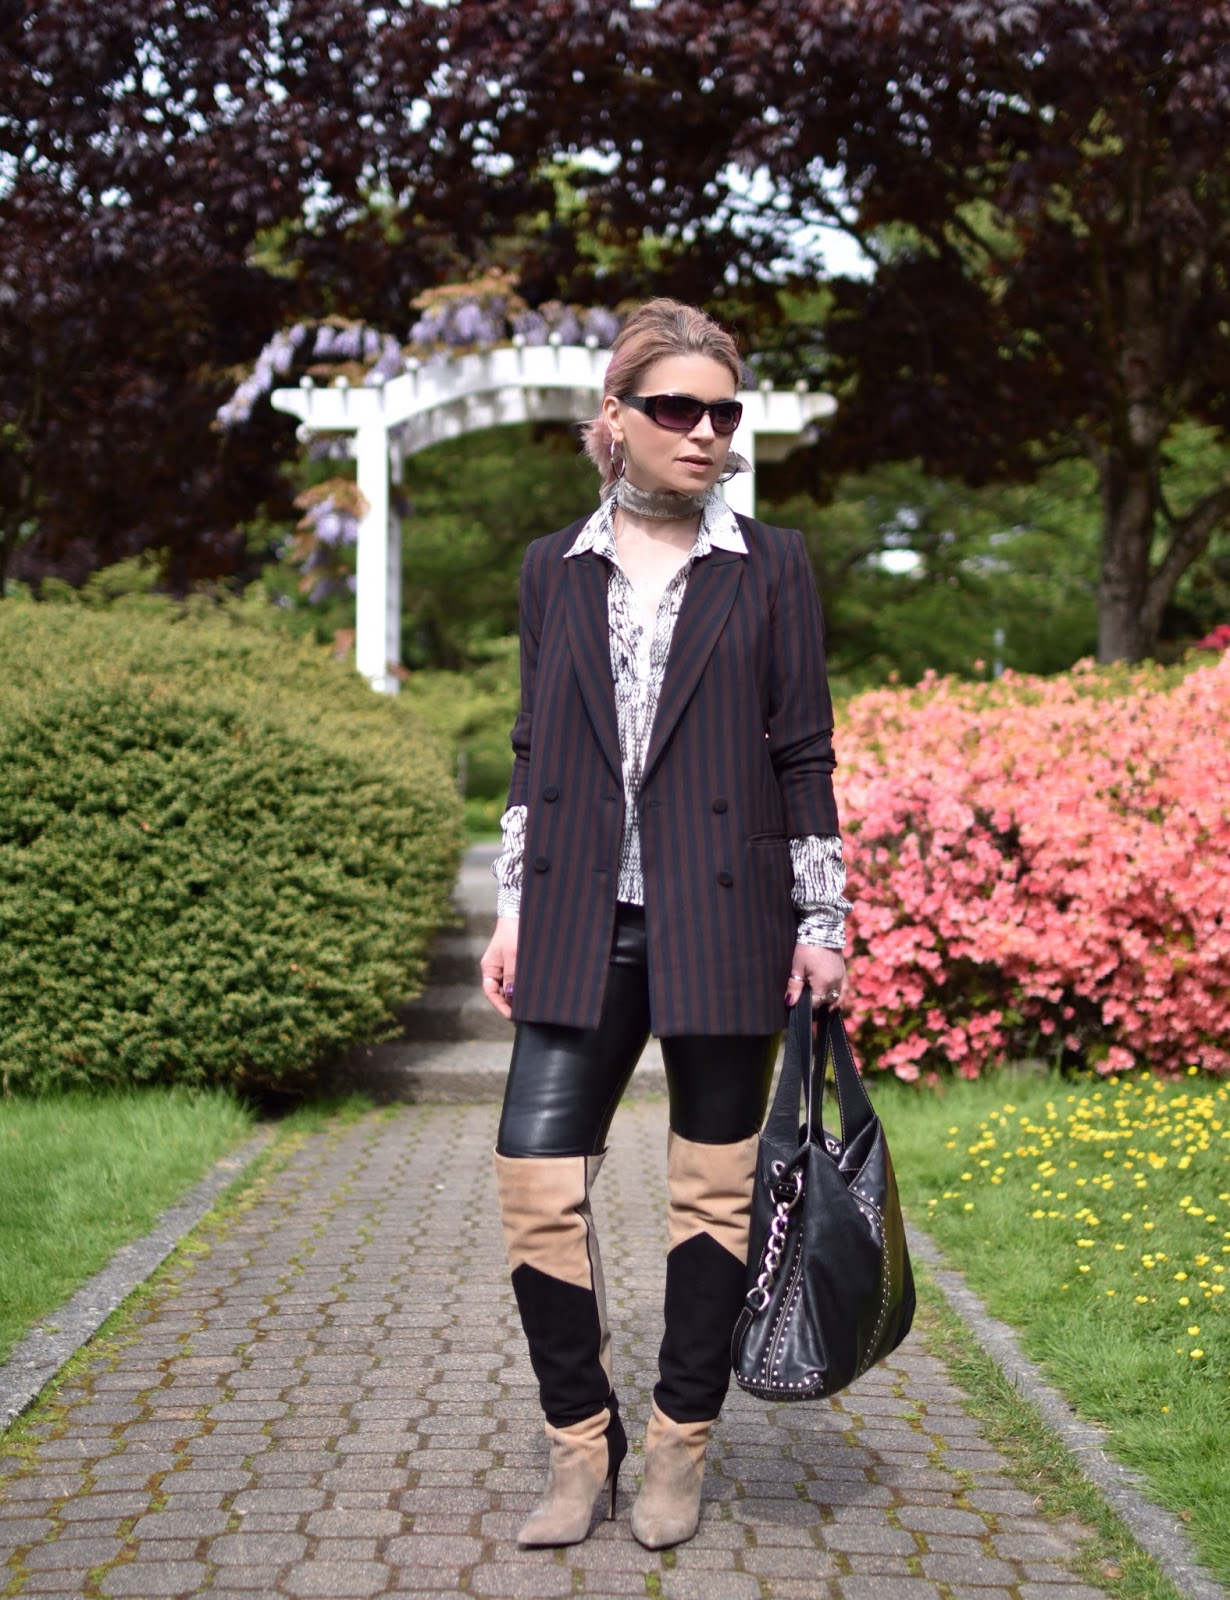 Monika Faulkner outfit inspiration - styling over-the-knee boots with a slouchy suit jacket and vegan leather leggings